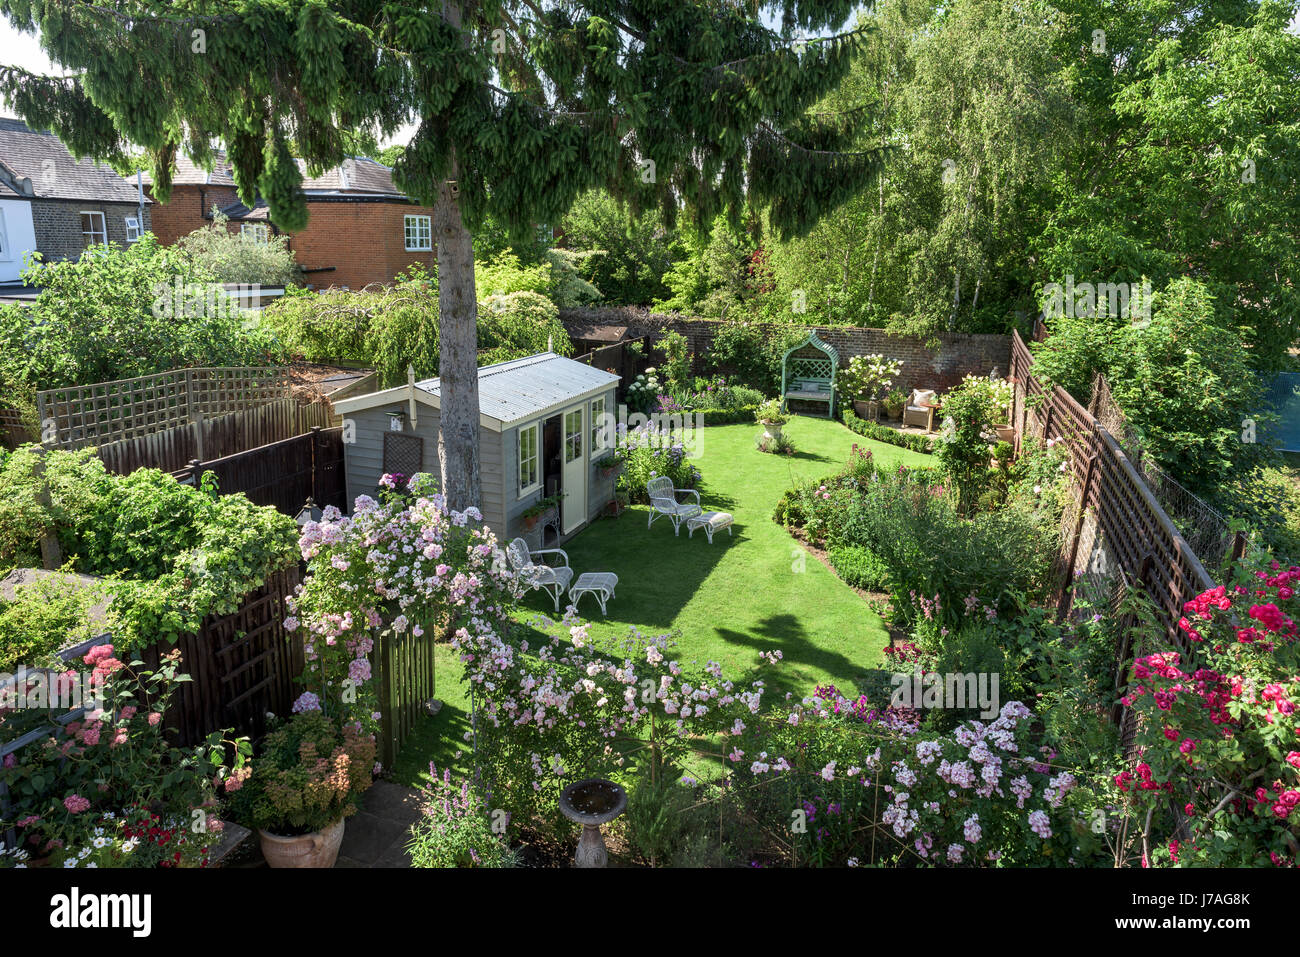 View from balcony down to english walled garden with summer house and rose arch - Stock Image